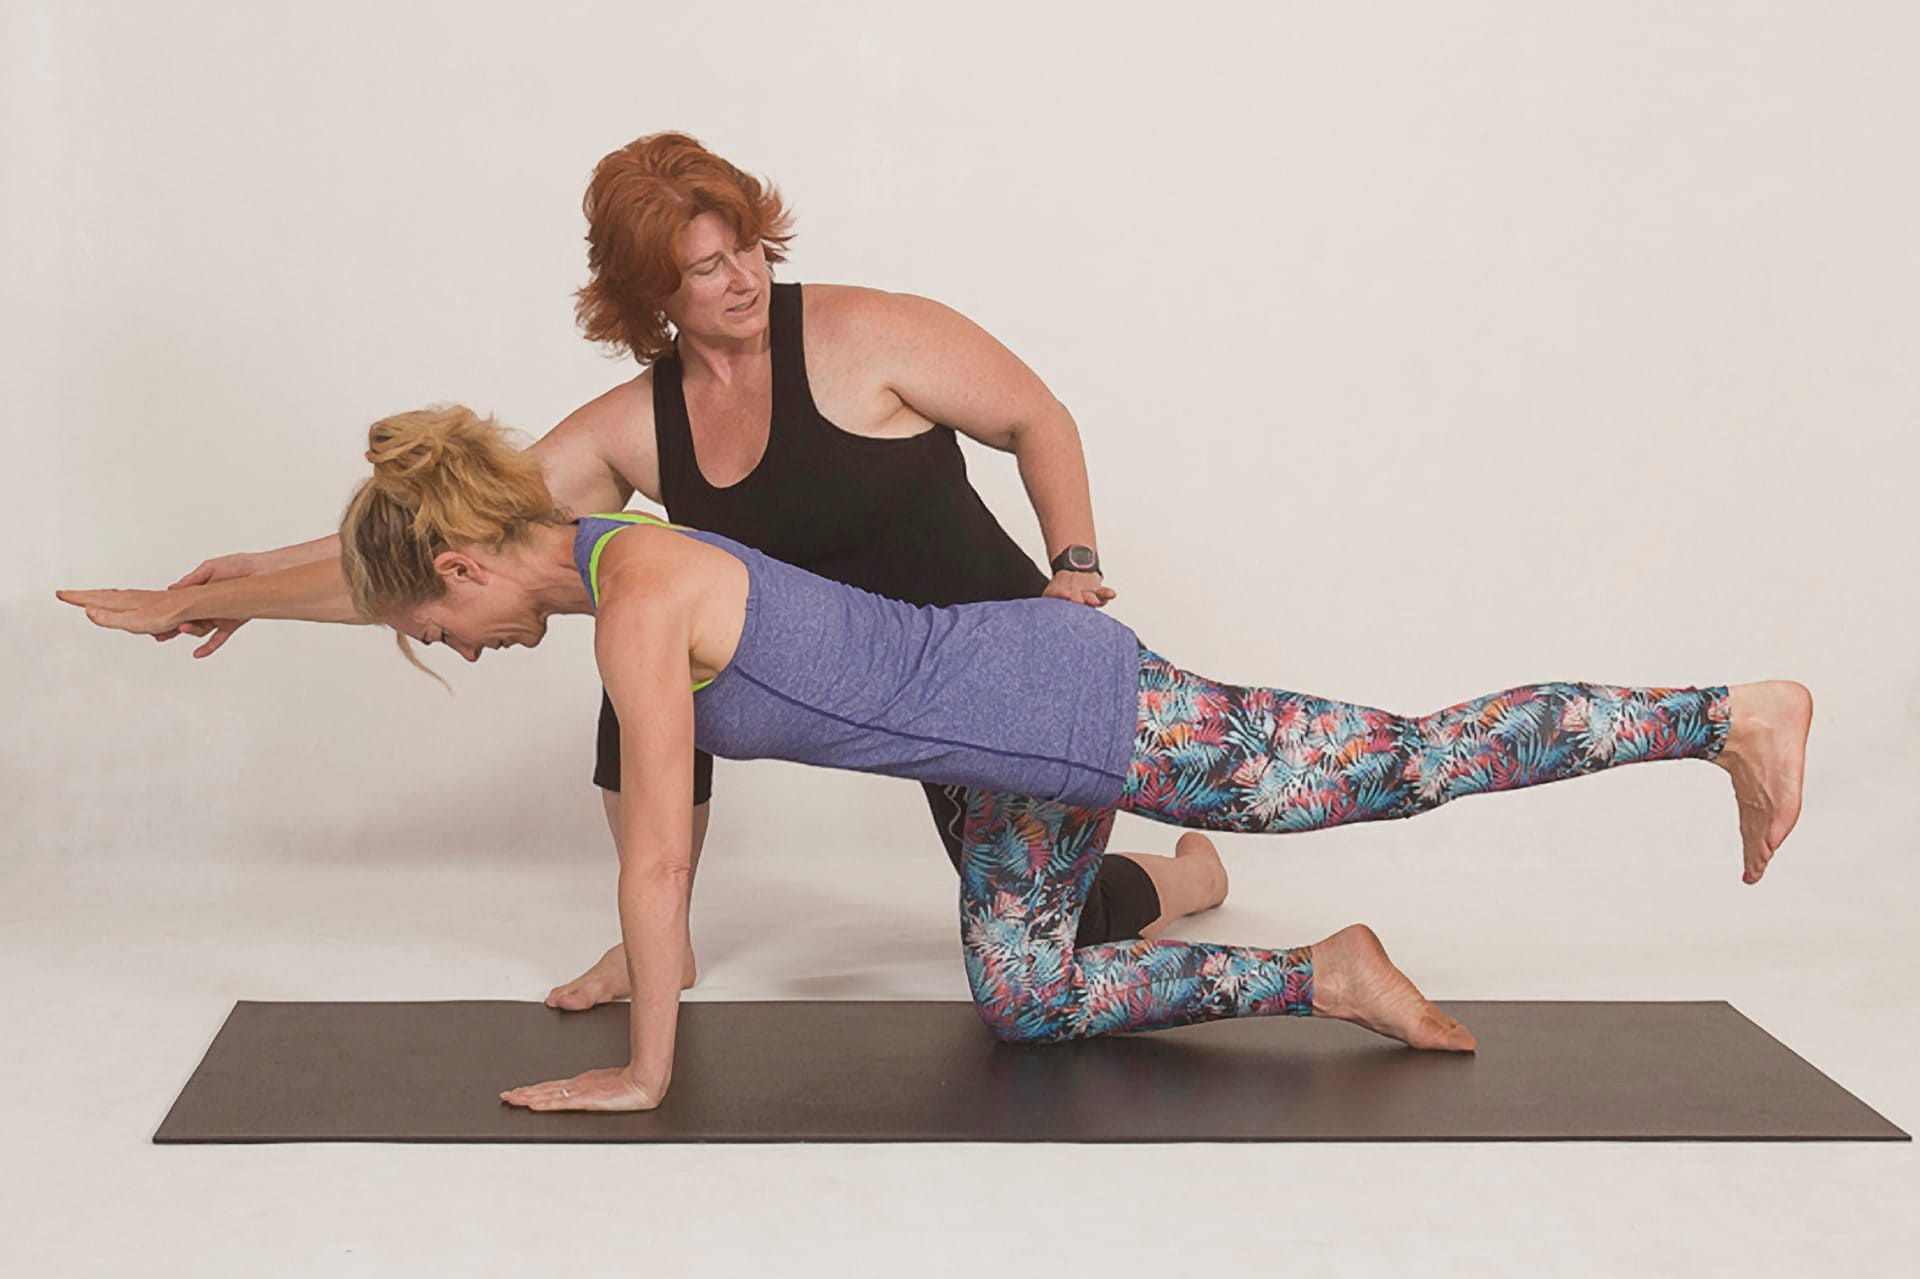 Yoga – to touch or not?